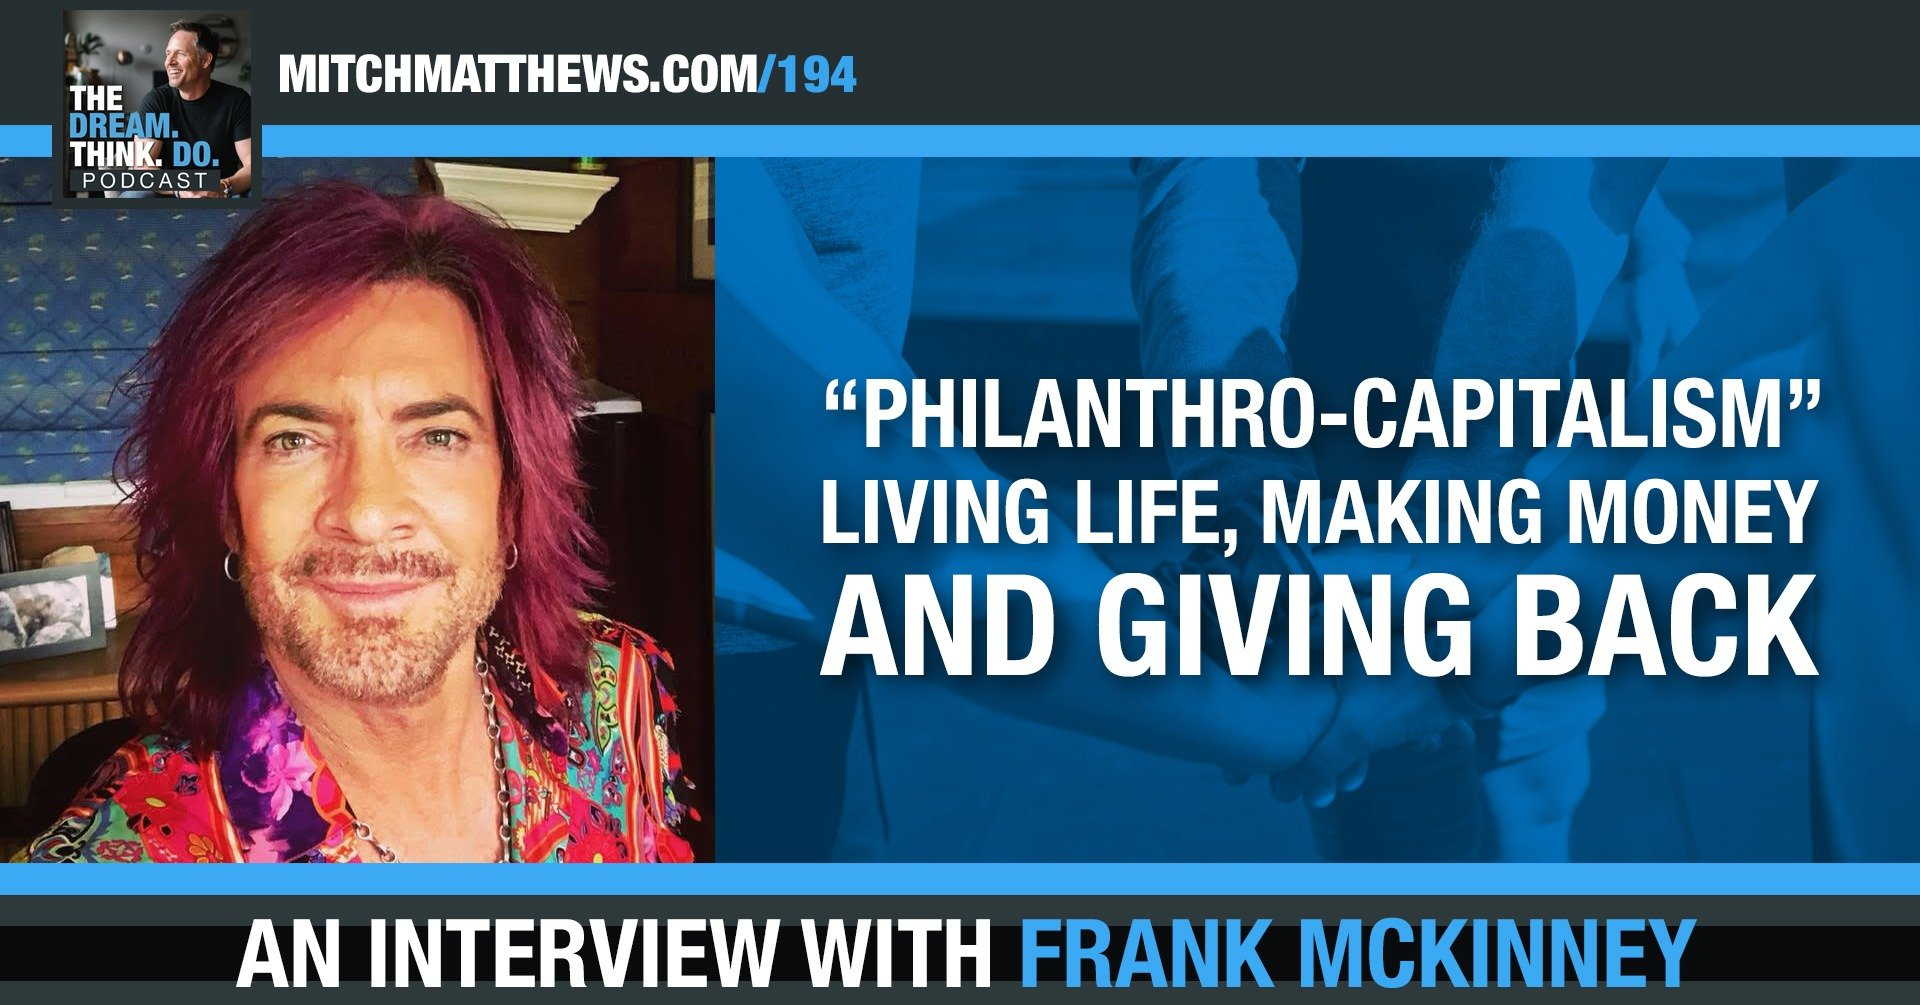 """Philanthro-capitalism"" - Living life, making money and giving back, with Frank McKinney"